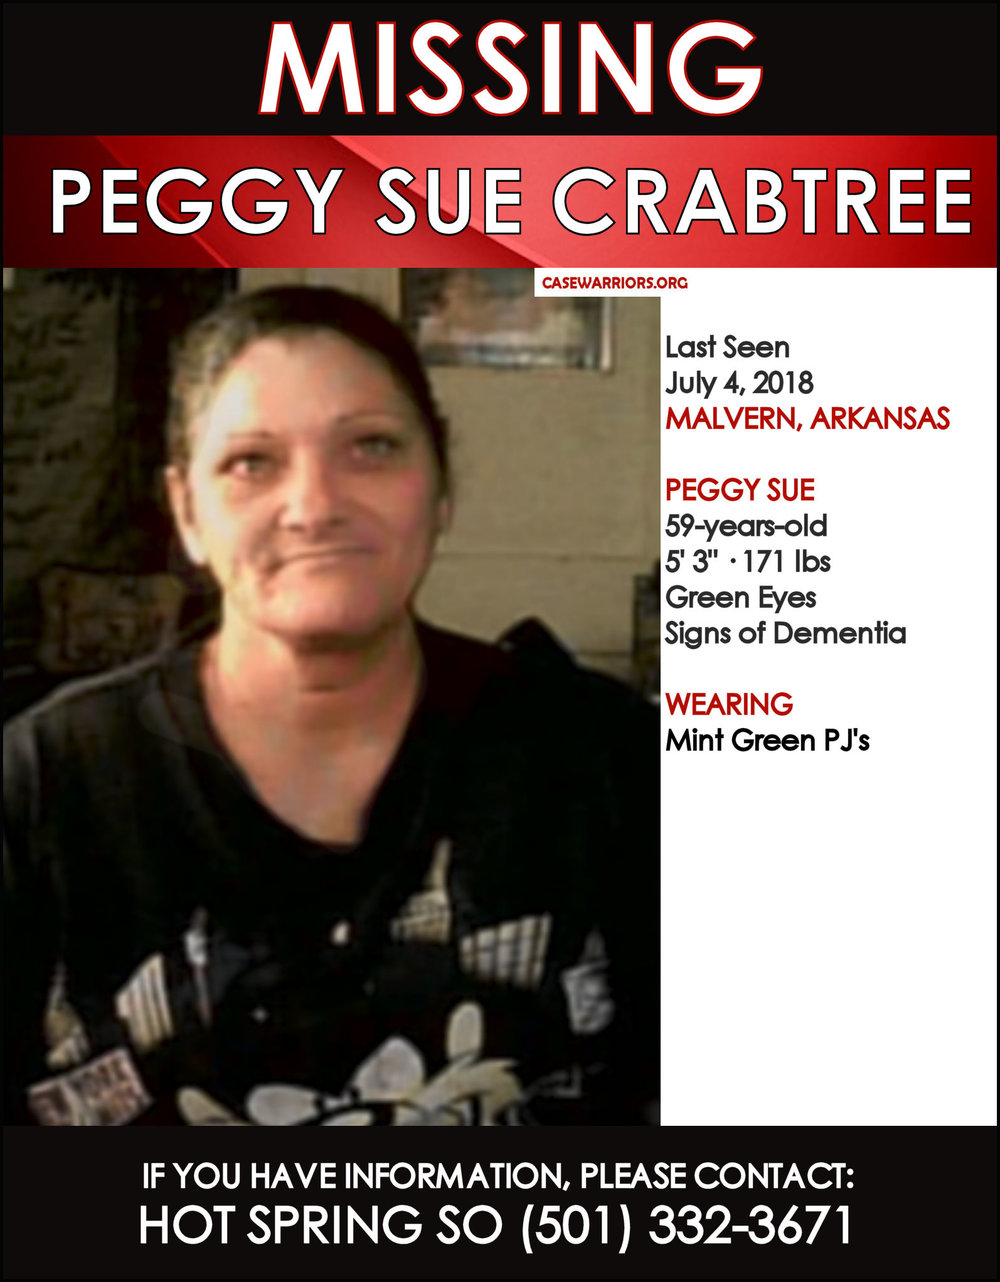 PEGGY SUE CRABTREE